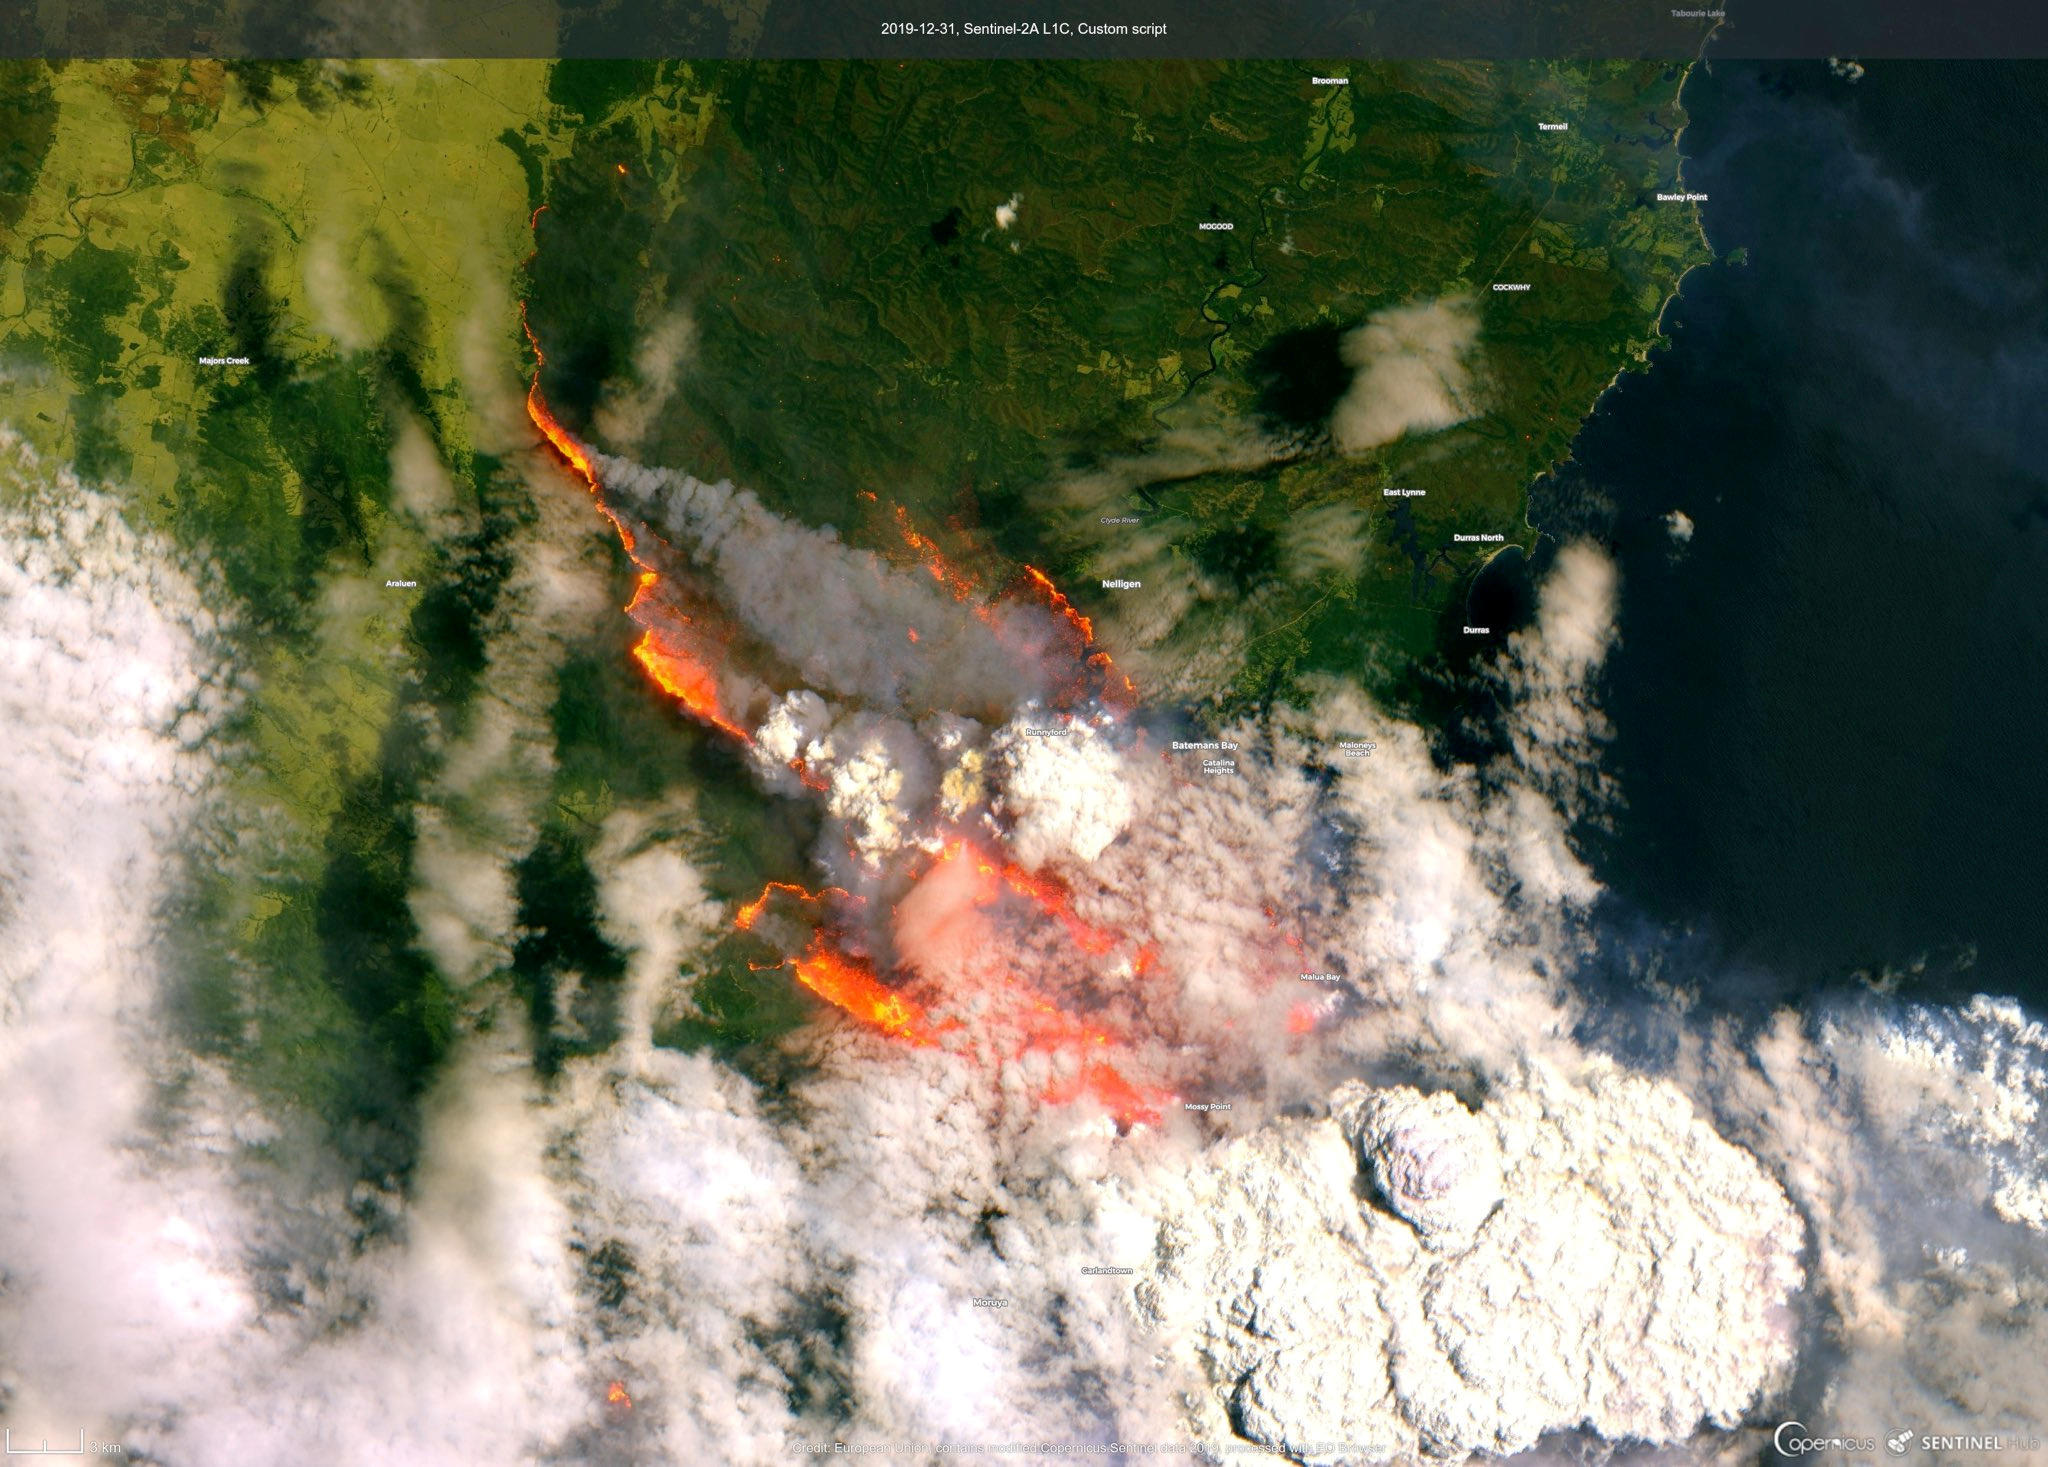 Australia Fires Pictures From The Deadly Wildfires Engulfing The